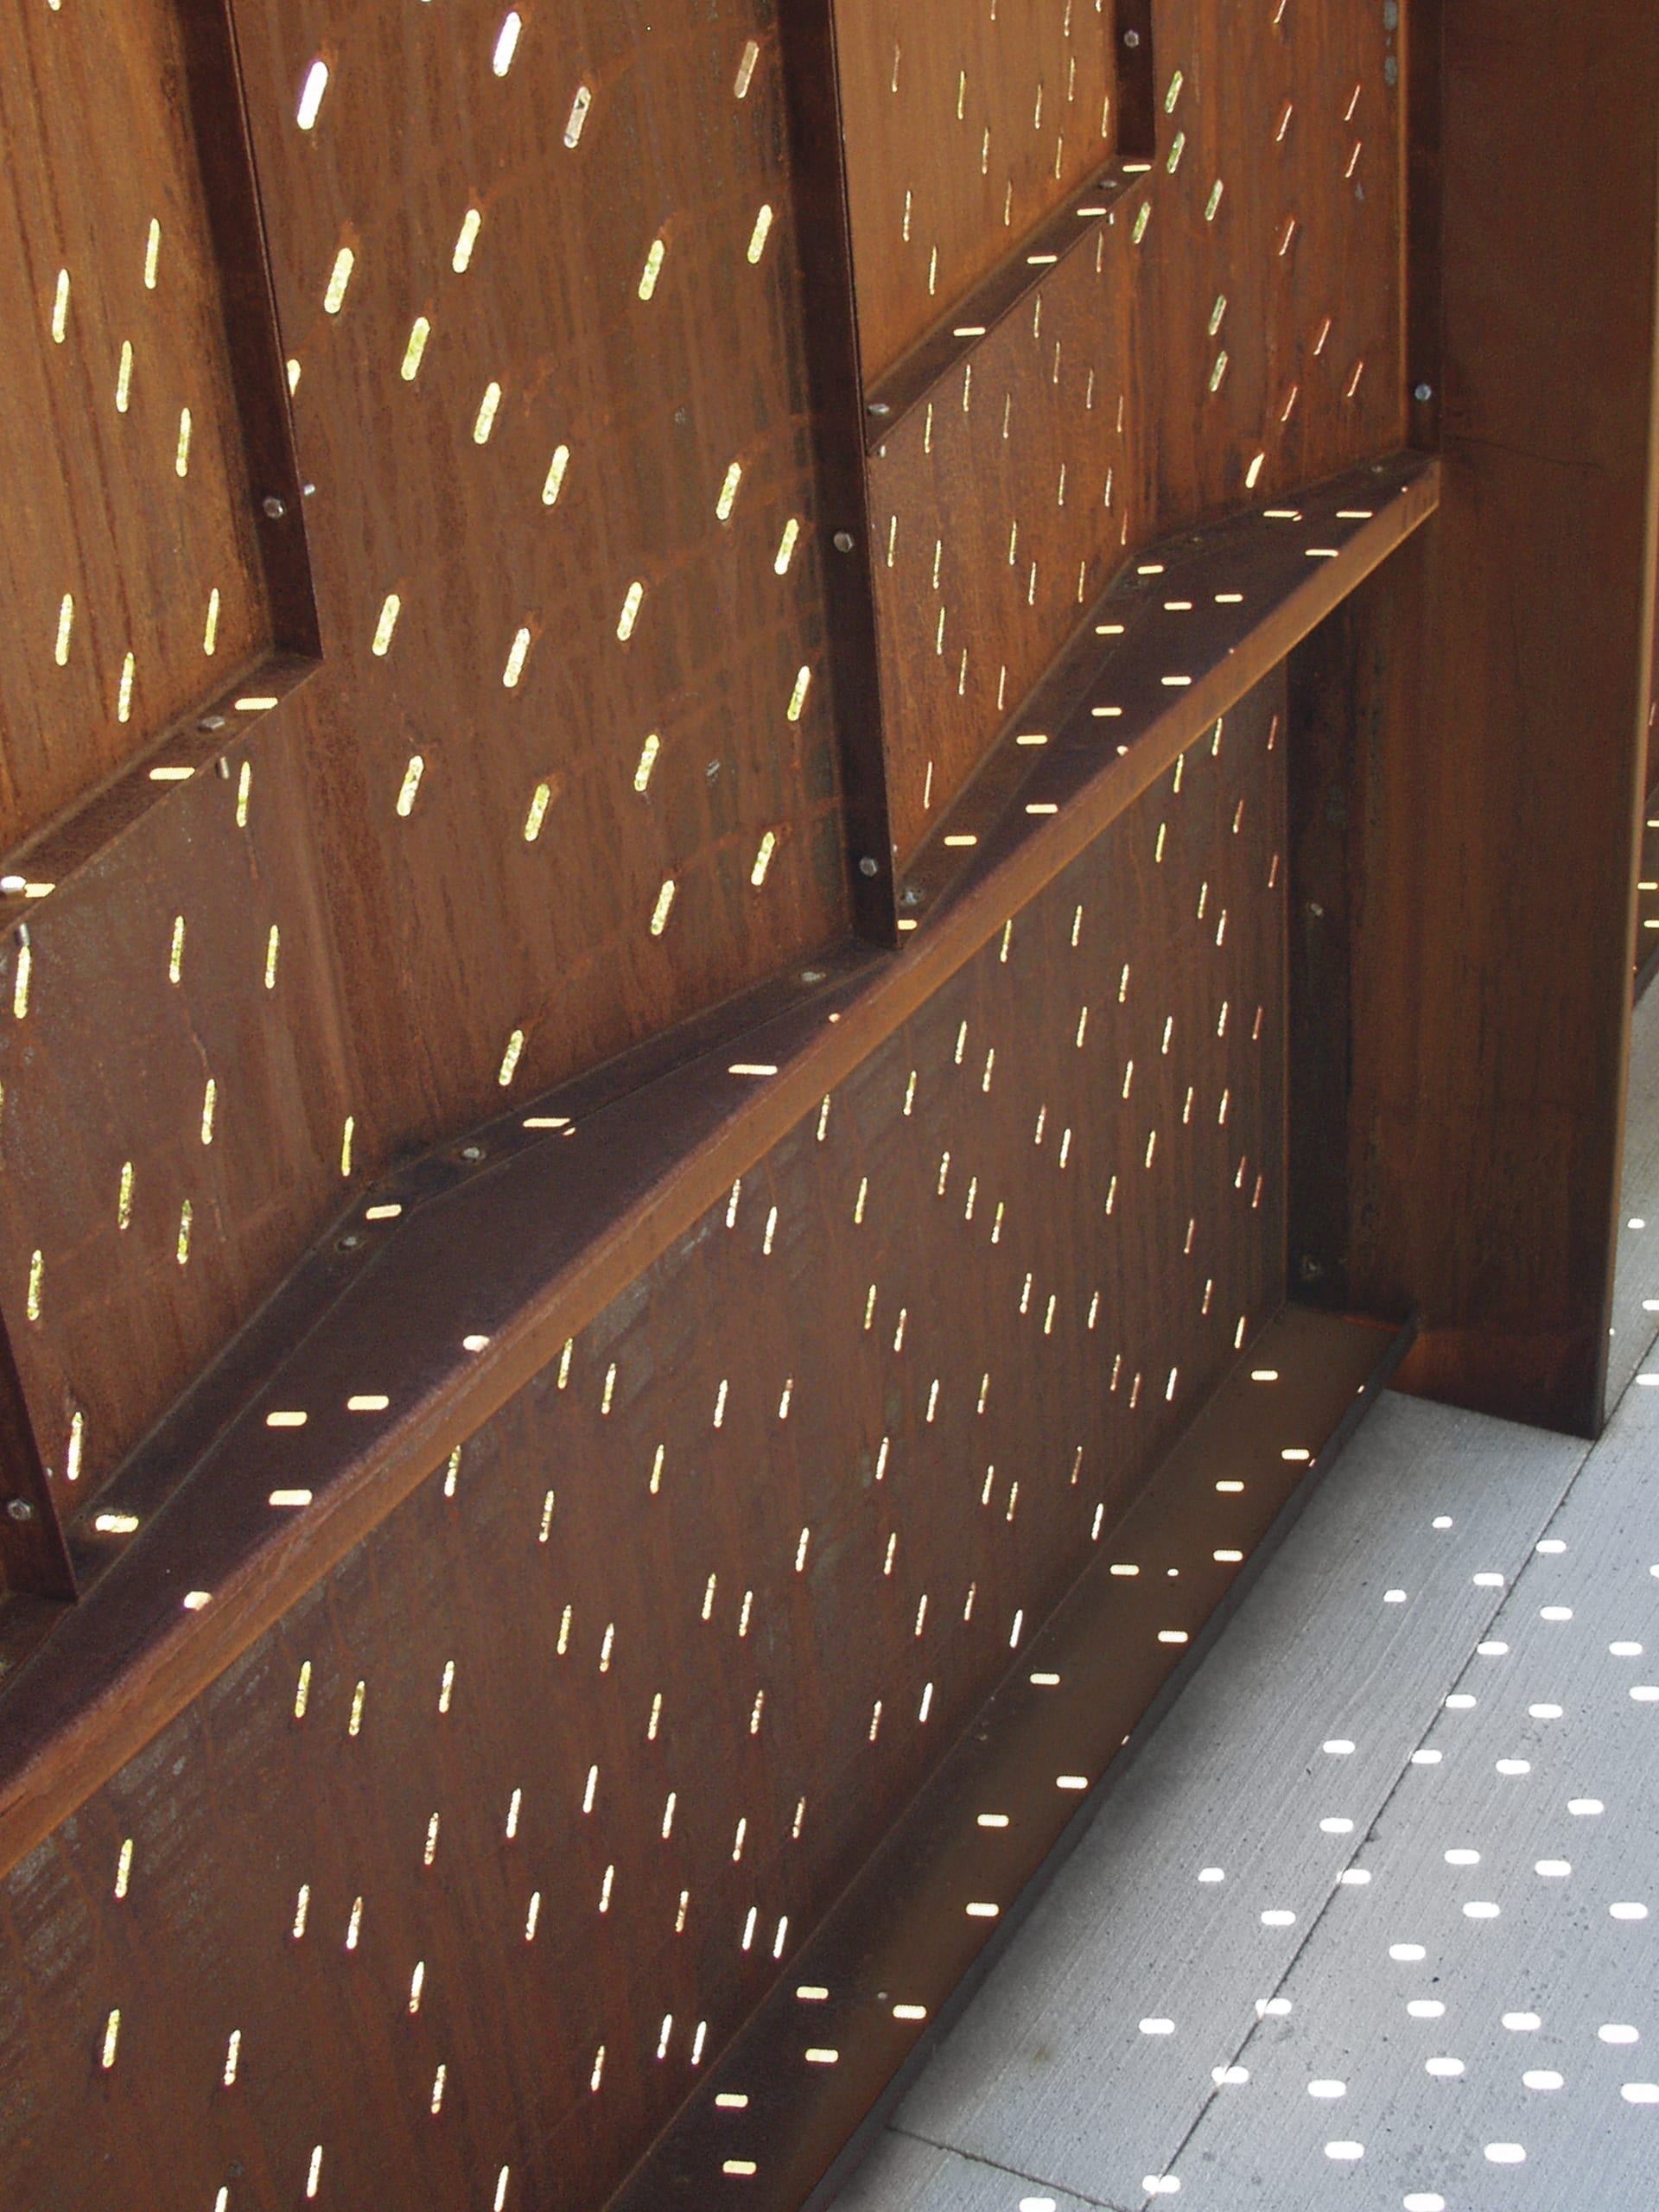 Custom obround die-shapes were used to create the oval perforation patterns in the weathering steel.